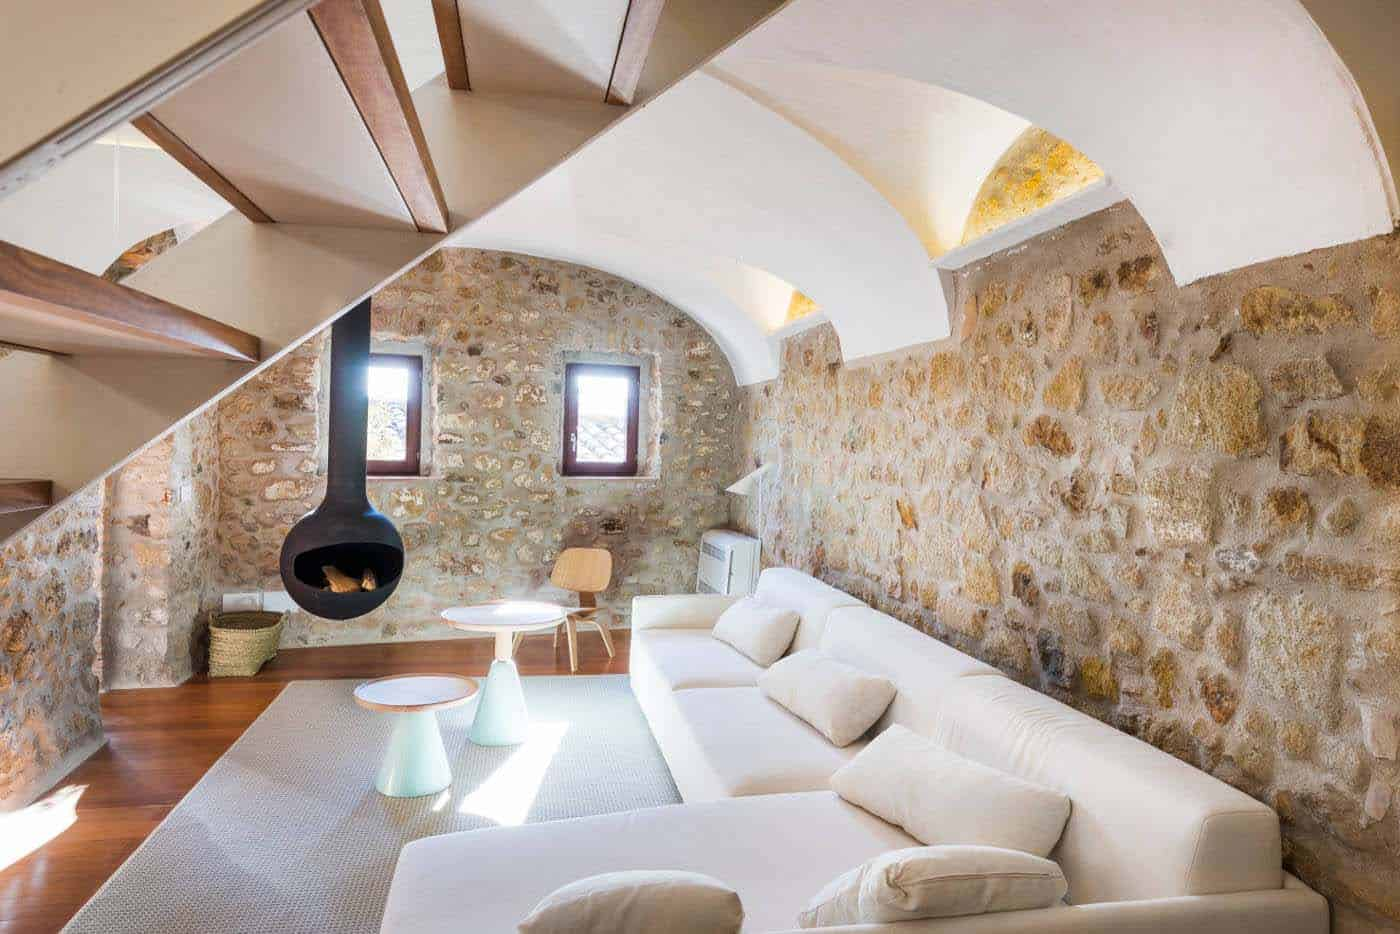 Historic Stone Dwelling-Gloria Duran Torrellas-04-1 Kindesign